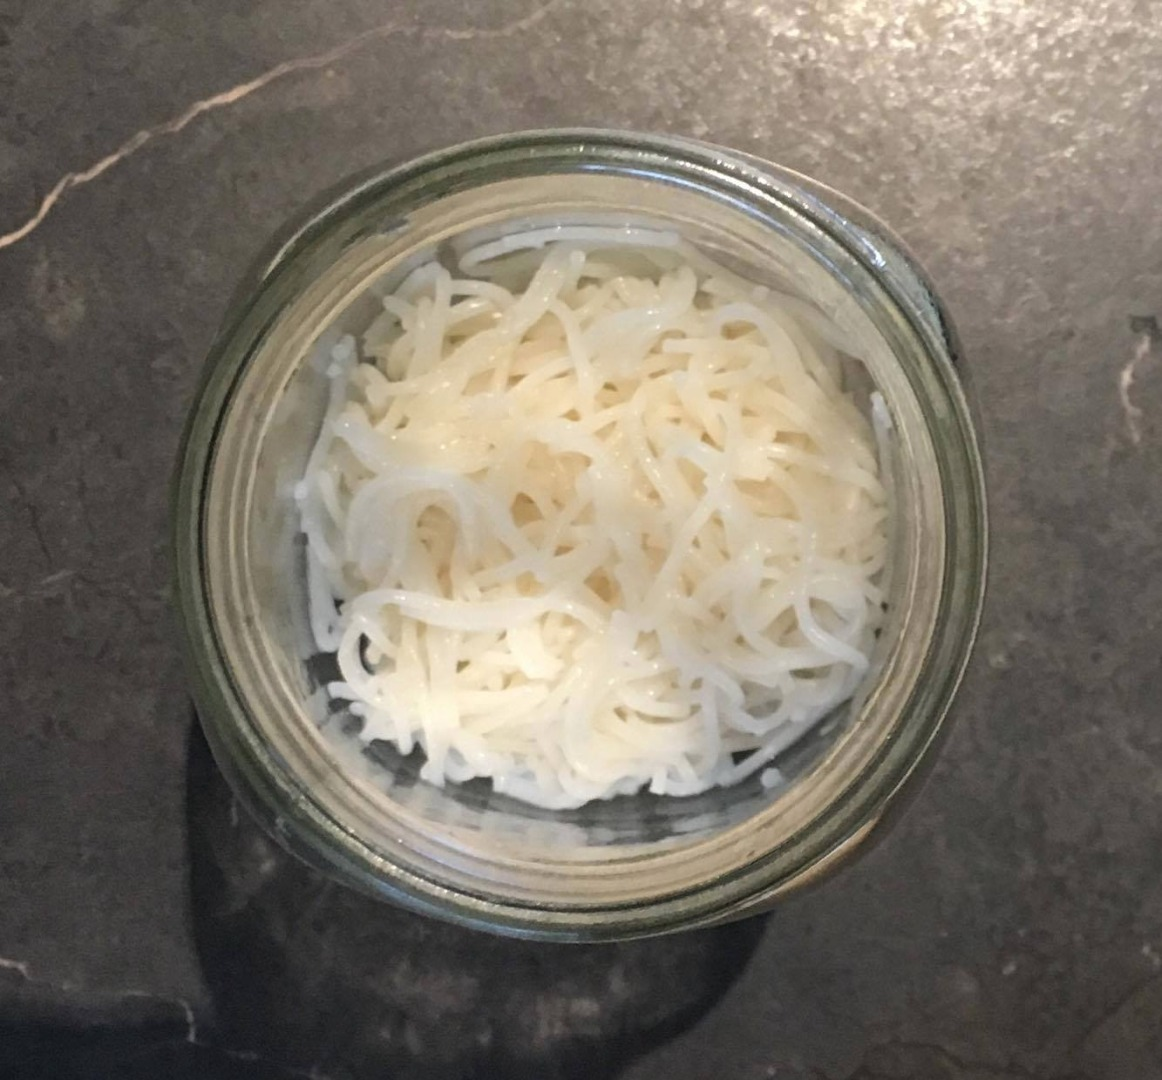 Picture of Step 2: Add Ingredients to Jar